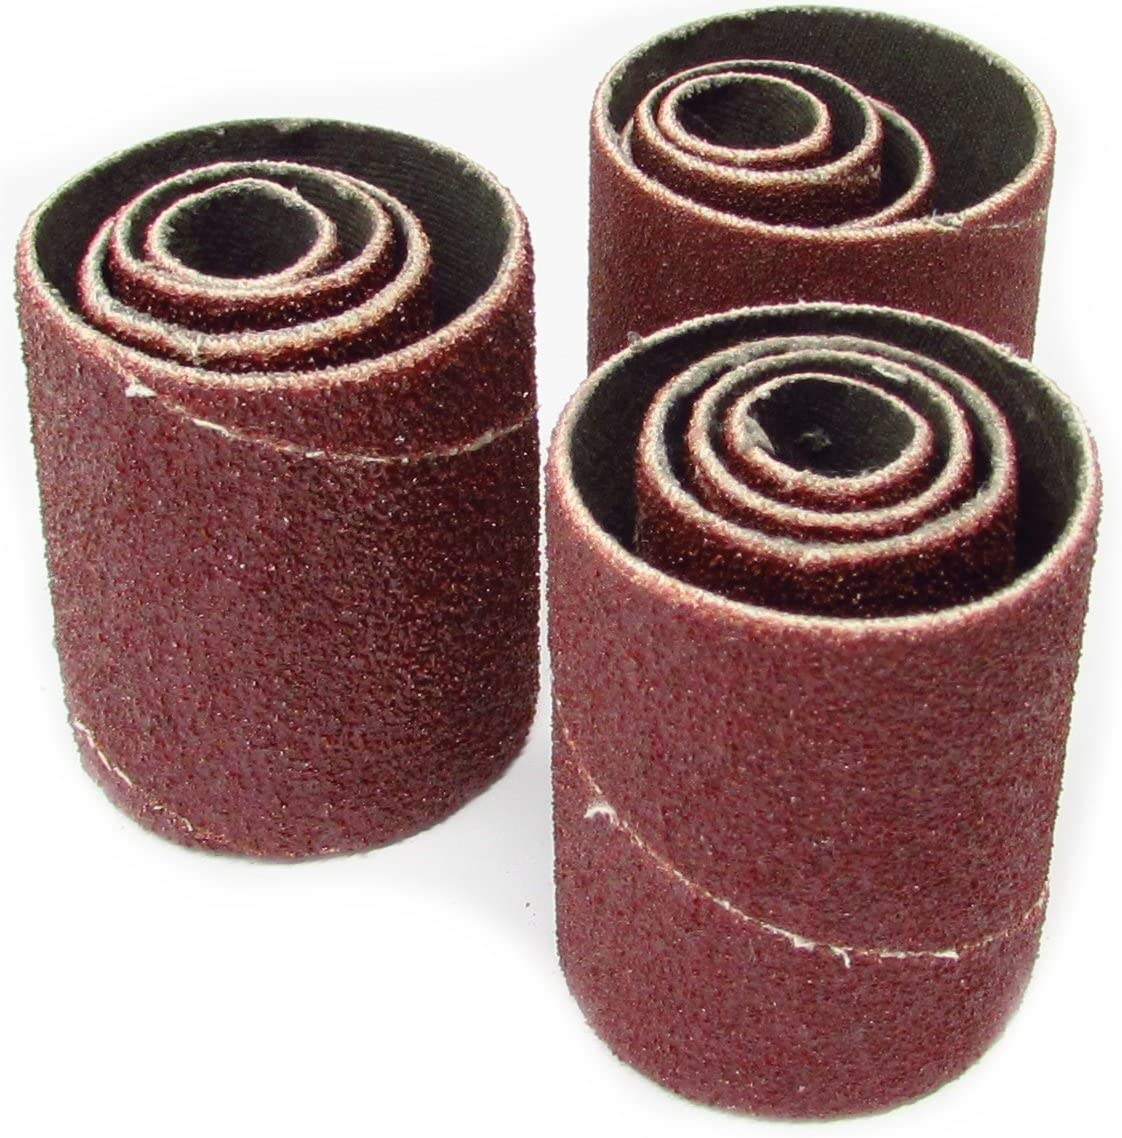 2-inch Long Spindle Bombing new work Sanding Sleeves Coarse 60 of At the price Grit Pack 12